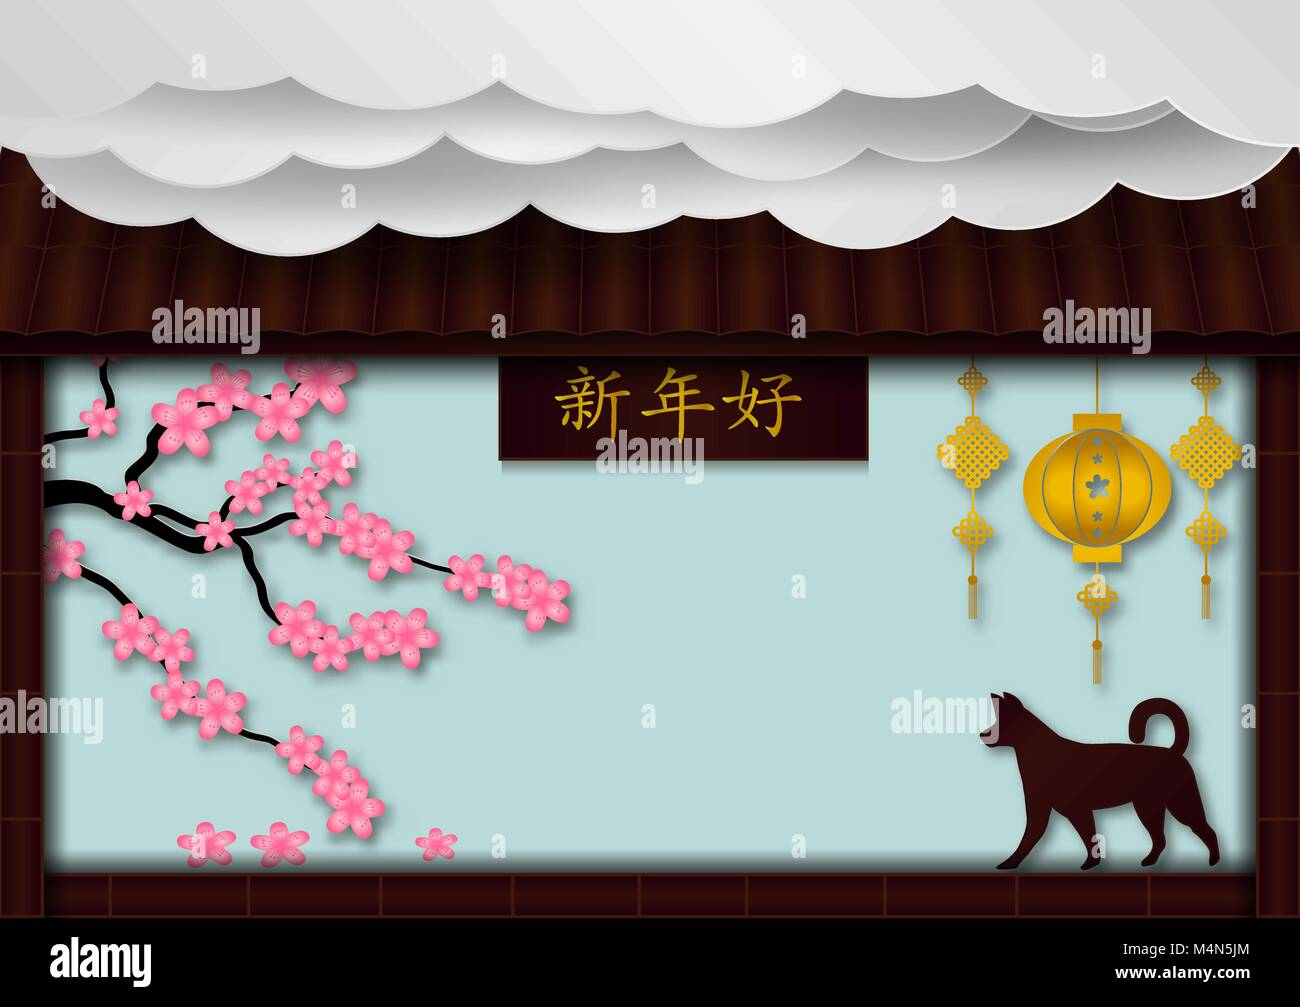 Paper art style of cherry blossoms with clouds and roof on blue background, for chinese new year, Vector illustration - Stock Vector